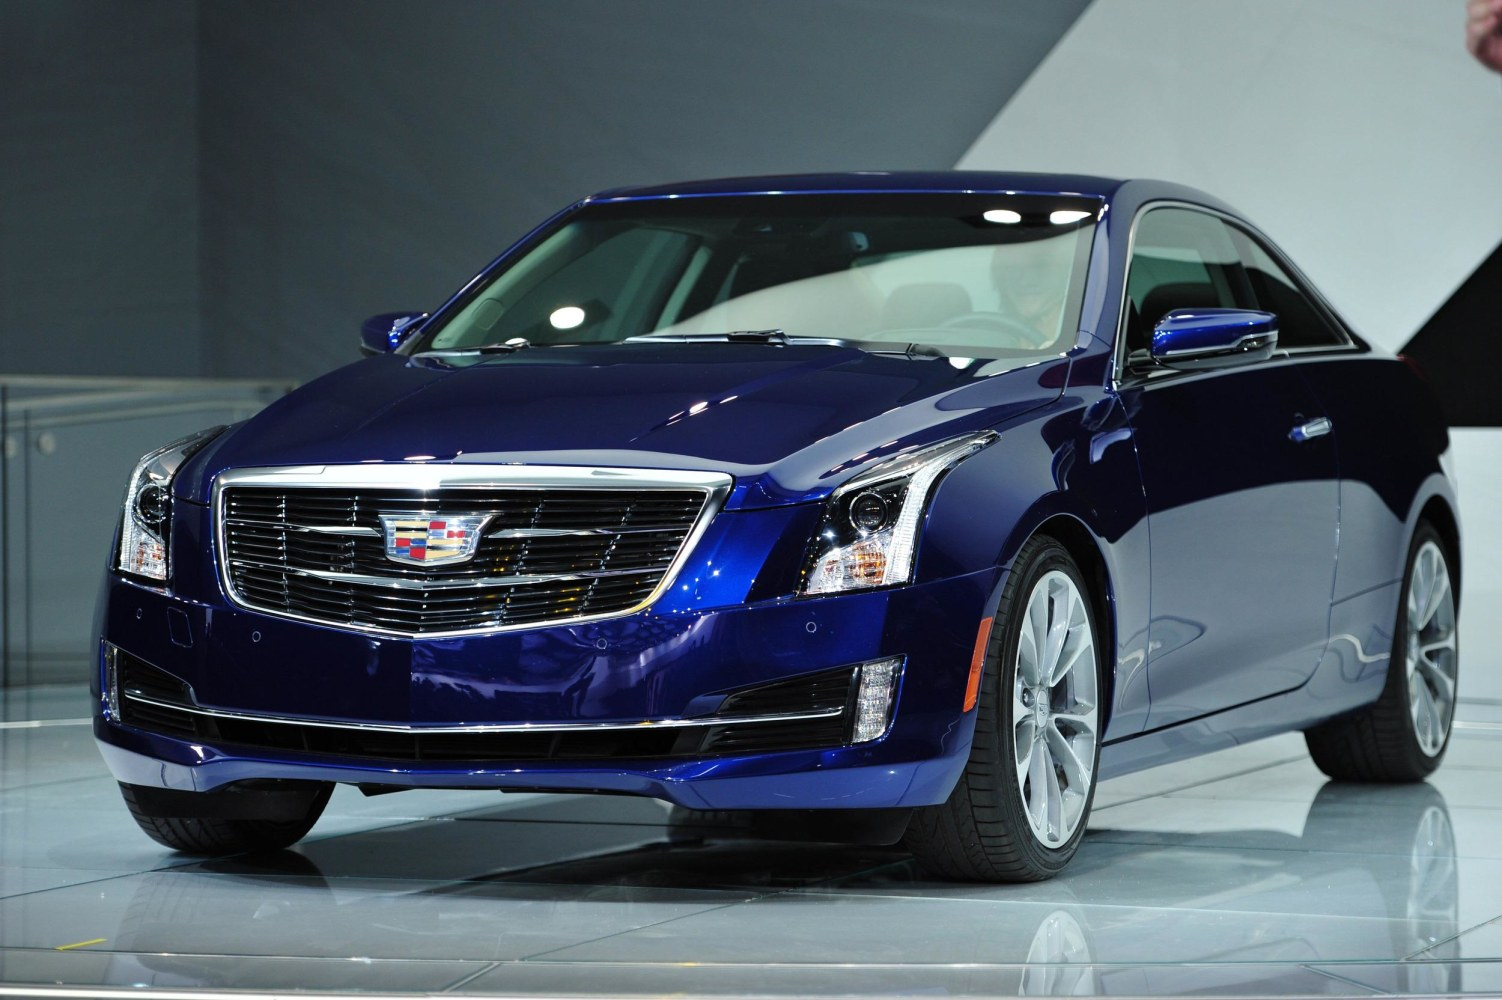 gm recalls cadillac ats models for overheating window. Black Bedroom Furniture Sets. Home Design Ideas